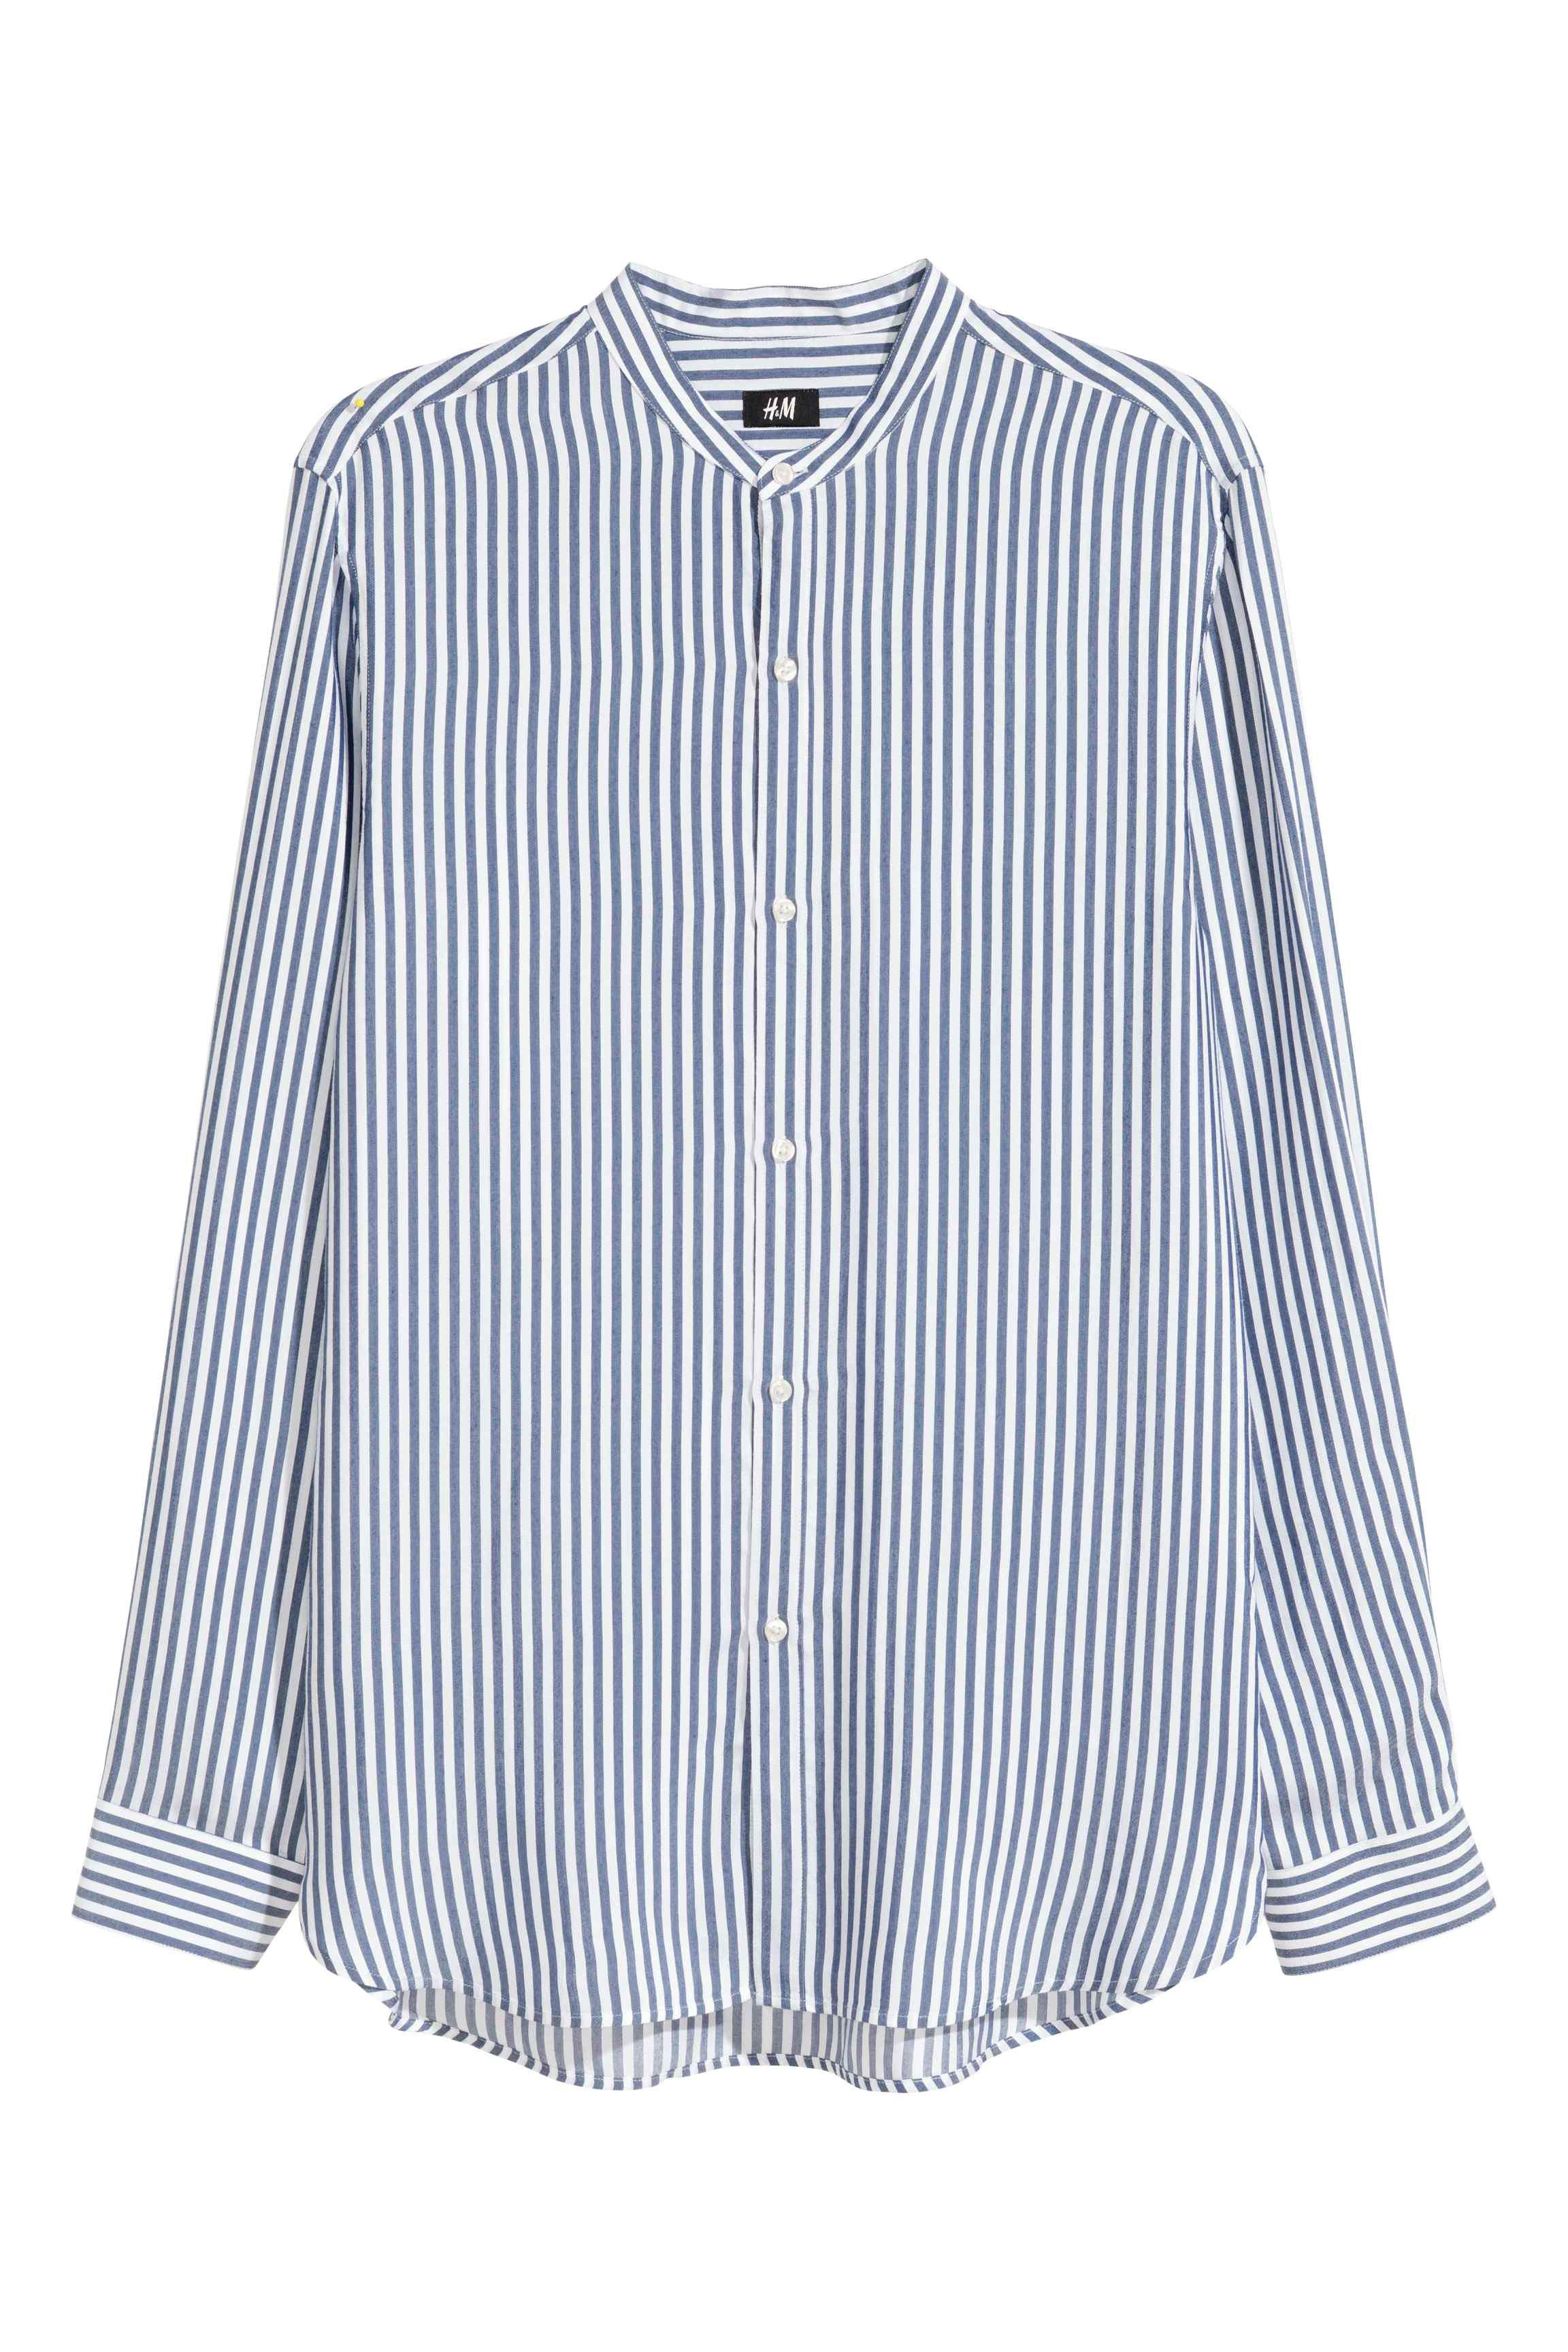 H&M Synthetic Viscose Shirt Slim Fit in White/Blue Striped (Blue) for Men